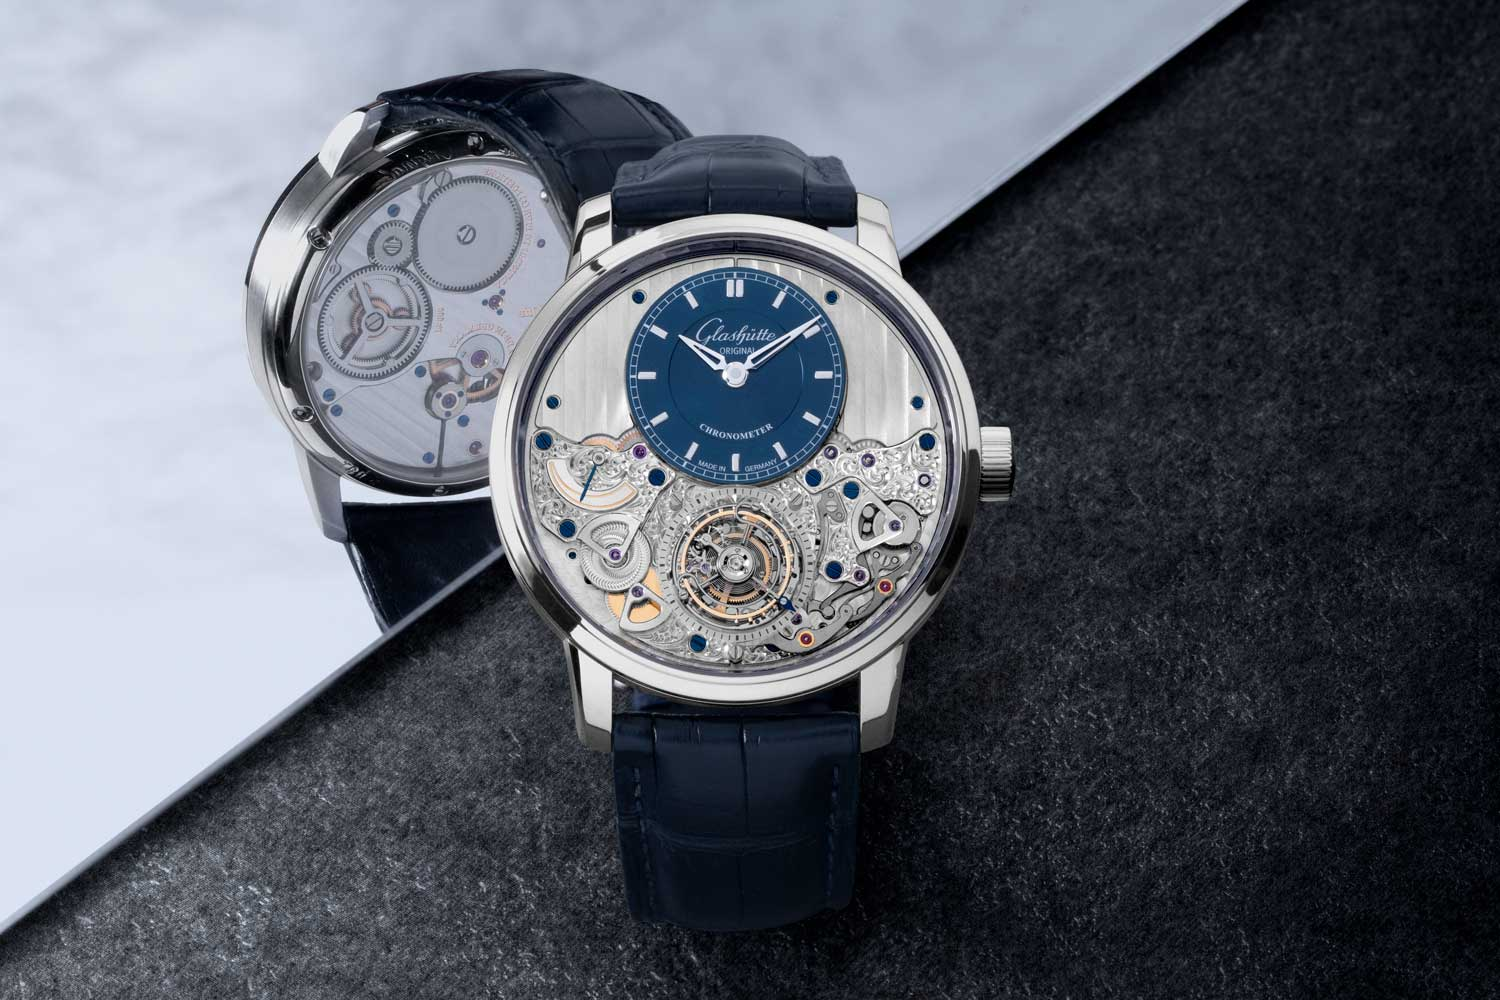 The manually wound Calibre 58-05, developed by Glashütte Original. Featuring a refined second-stop and reset mechanism, which stops the time display while the crown is out, resets the second display to zero, and keeps it there. (©Revolution)